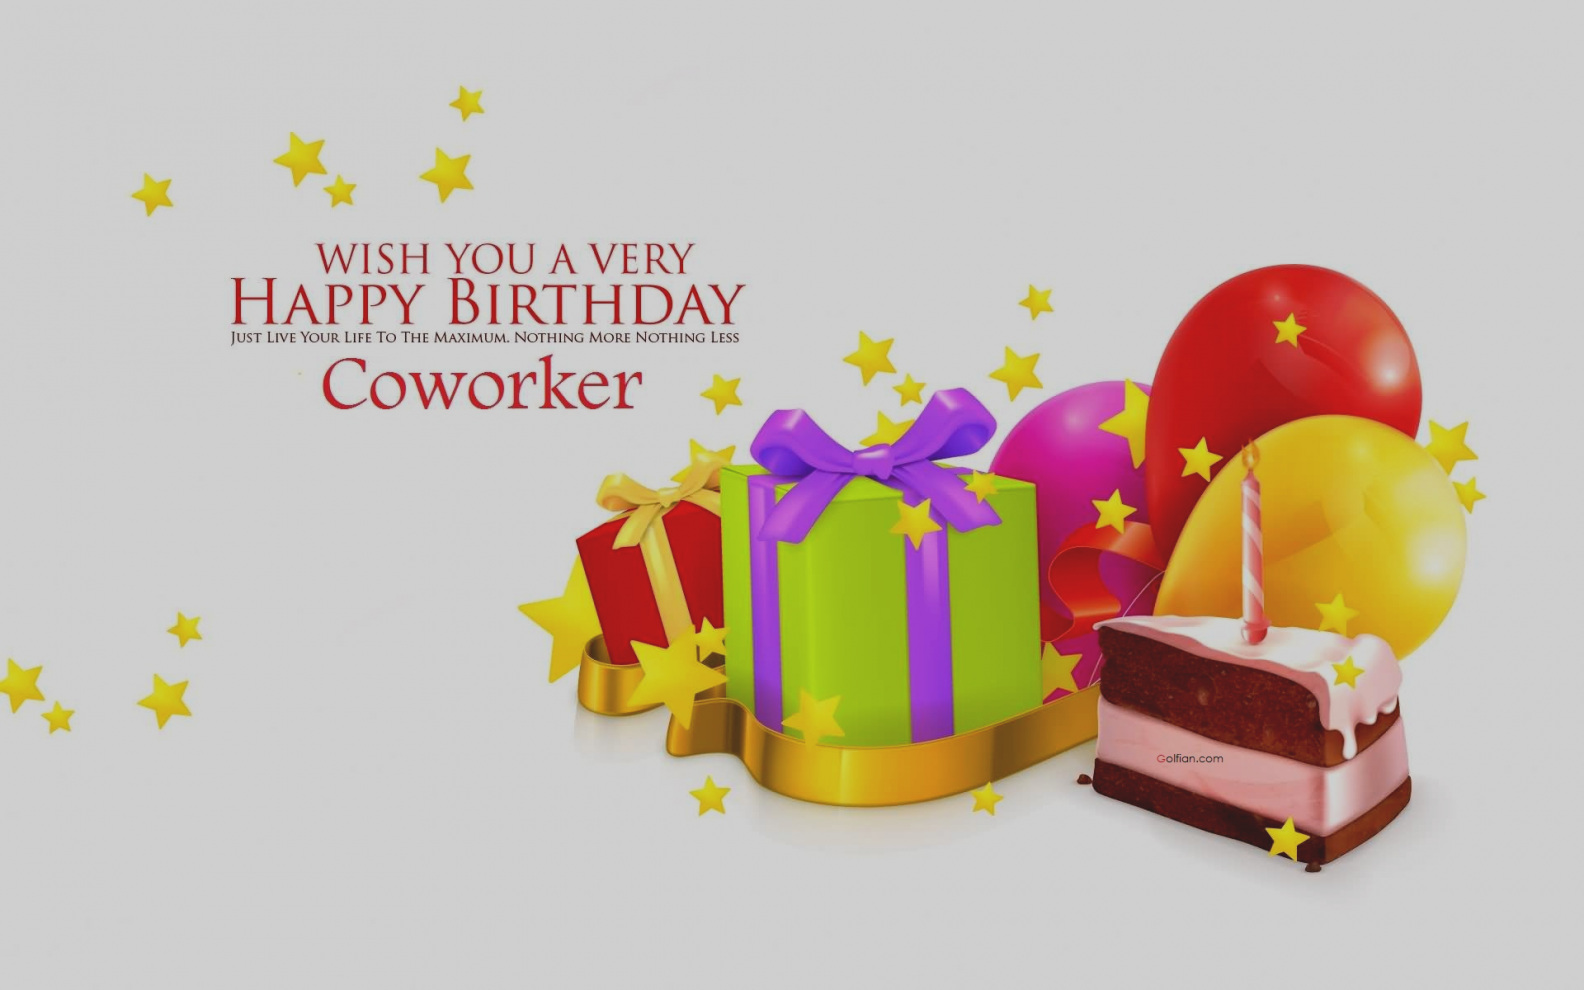 birthday greeting cards for office colleagues ; beautiful-birthday-greeting-cards-for-office-colleagues-60-wishes-coworker-latest